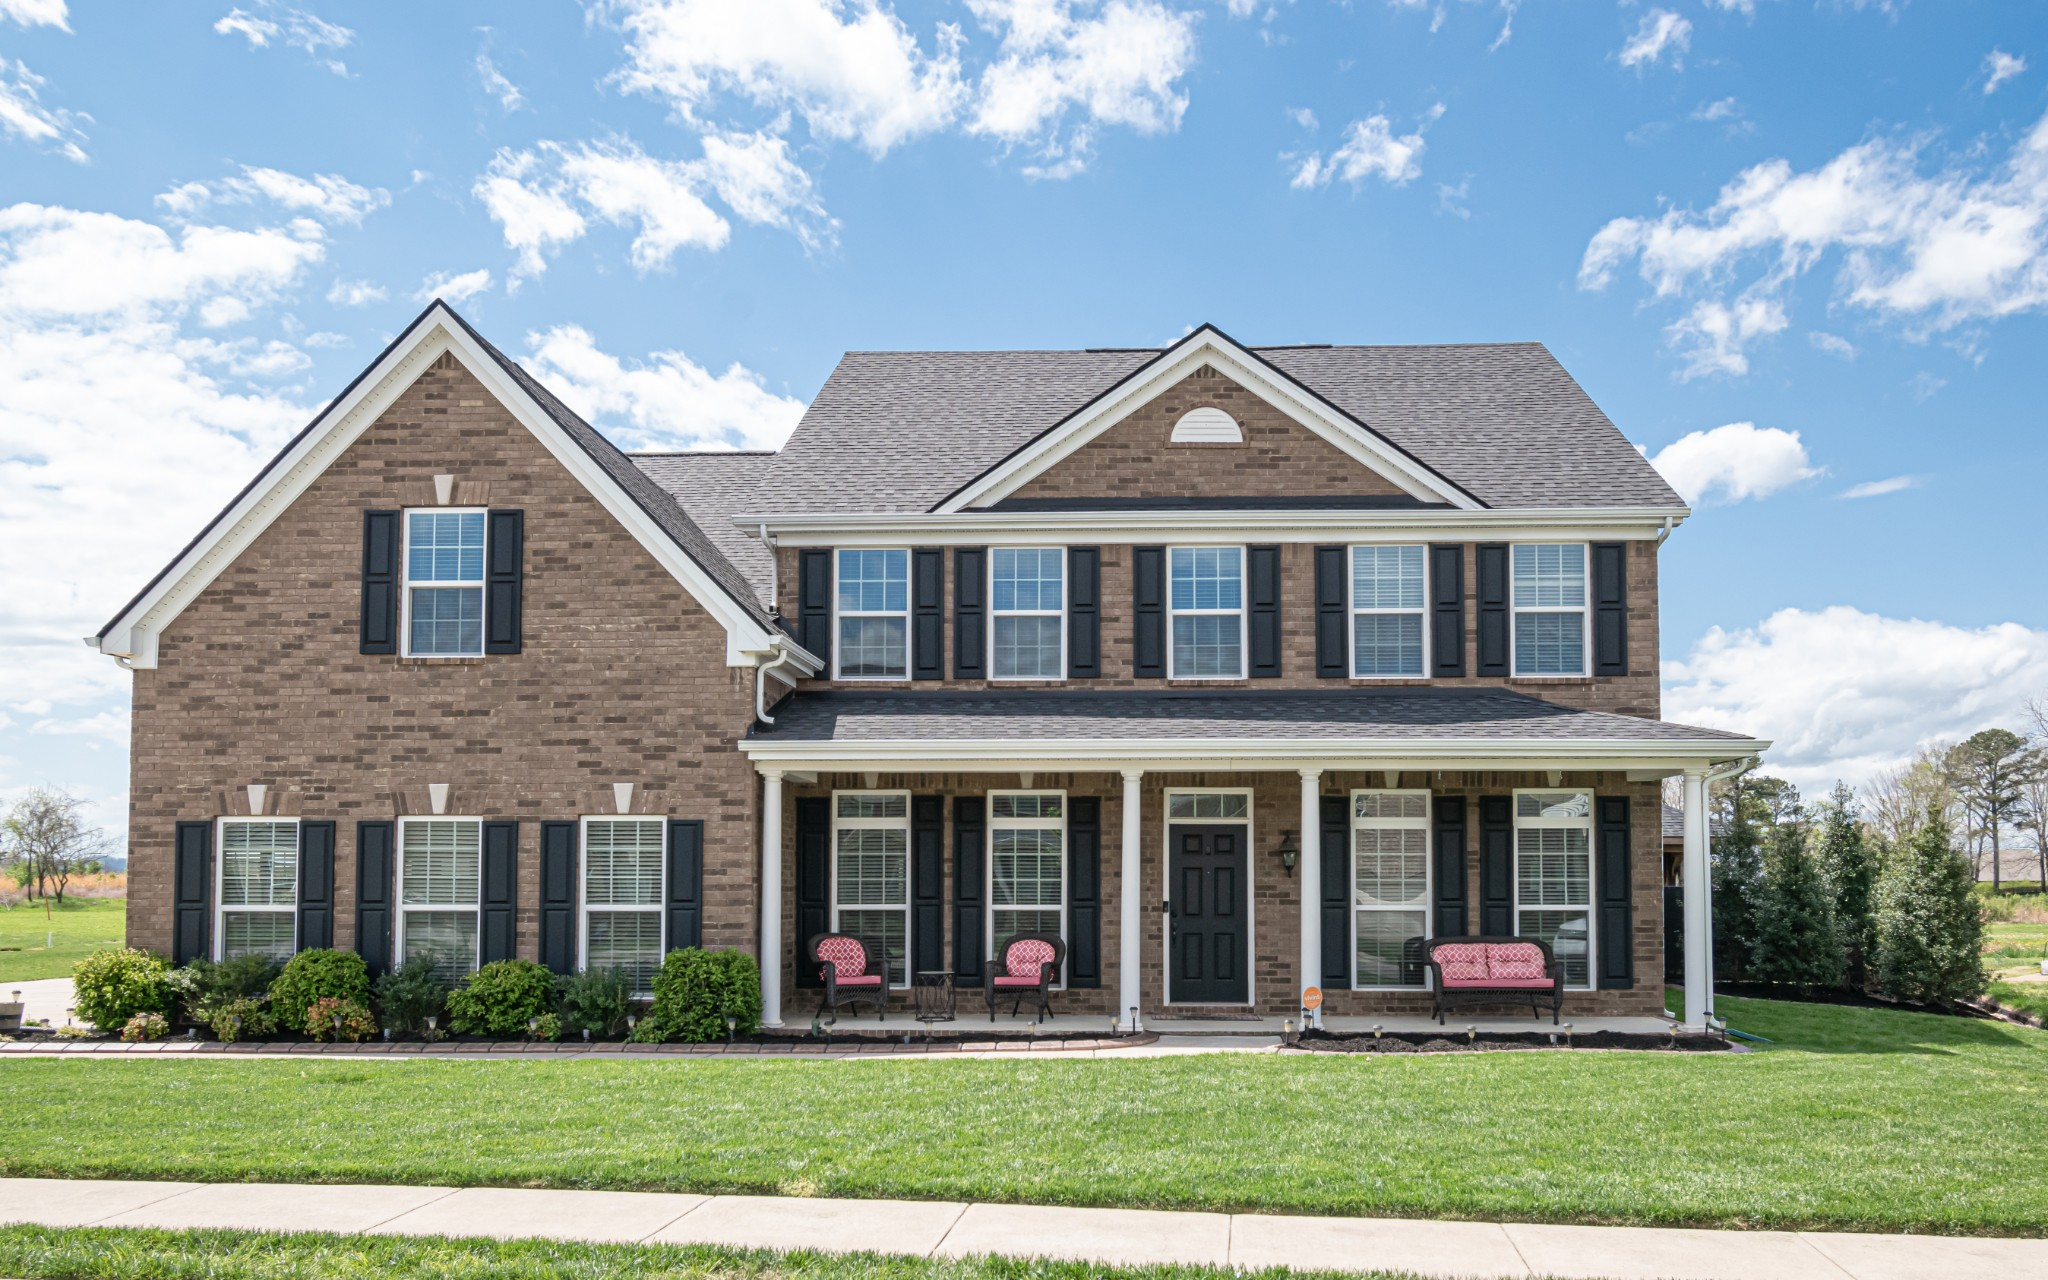 First time on the market.  Beautiful custom built home in Muirwood Subdivision.  All brick with wood floors and tile in wet areas.  Too many upgrades to list.  See the beauty of this home in person.  This house is a gem.  See below link for 3D walk through.